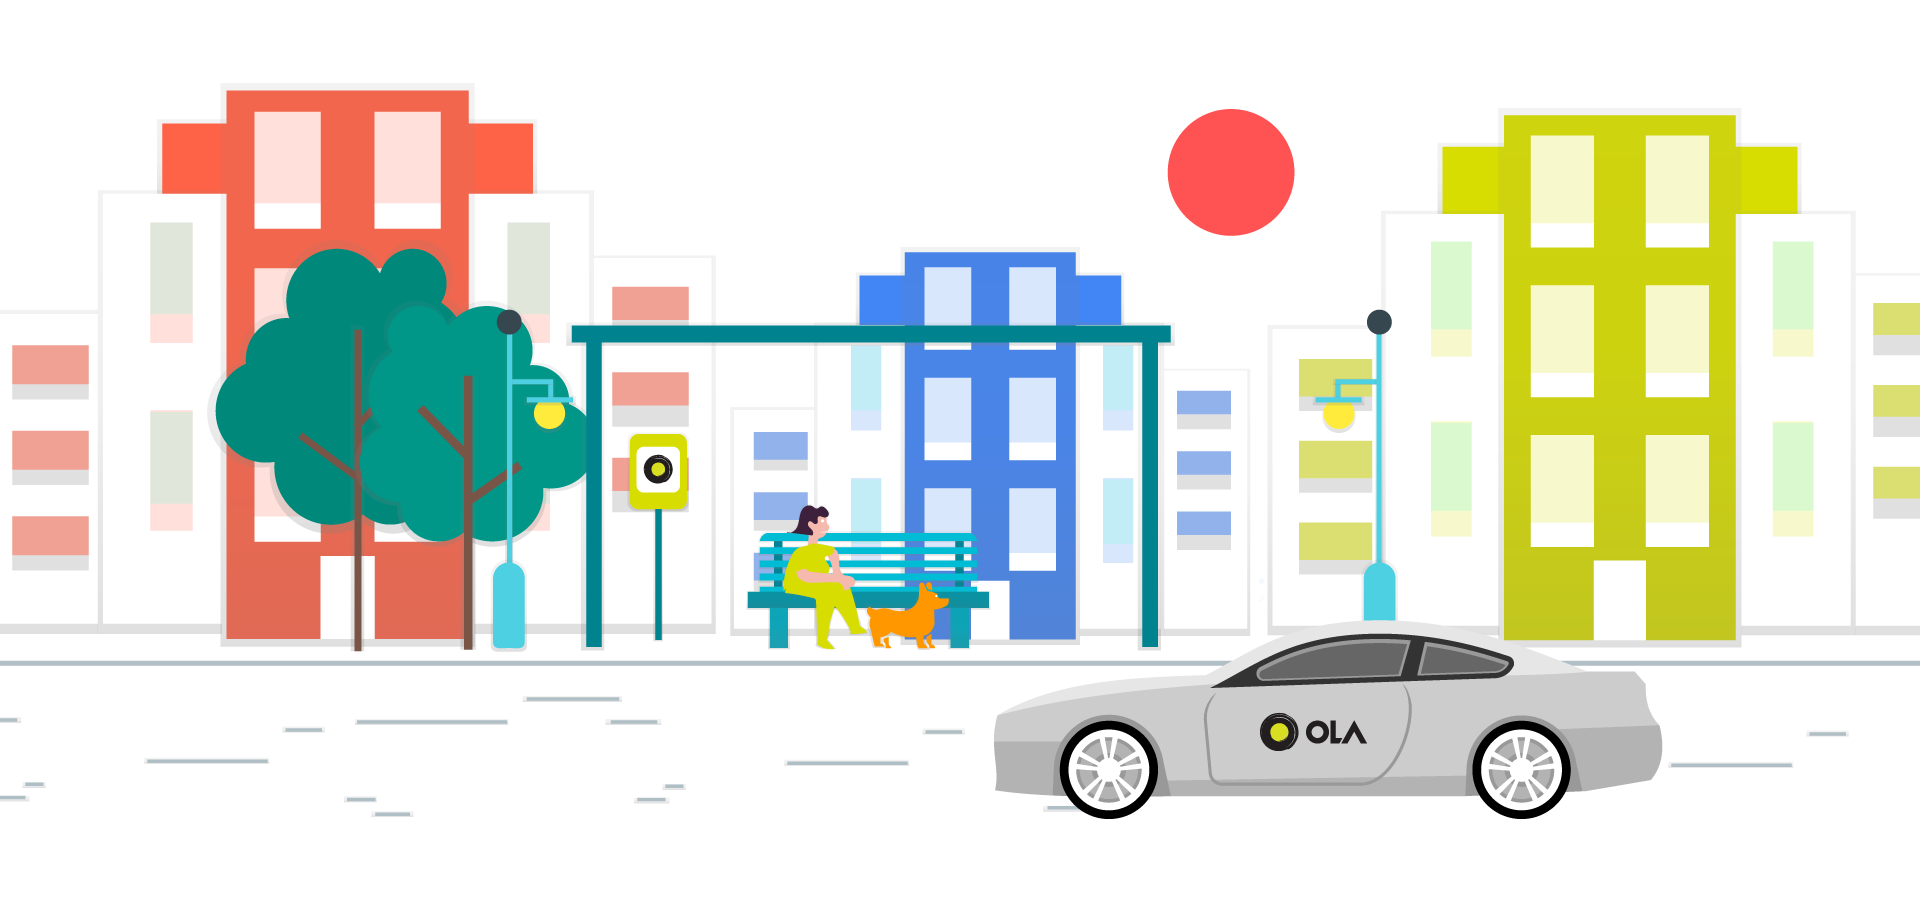 Redesigning the Ola Cabs app — a UX case study - UX Collective